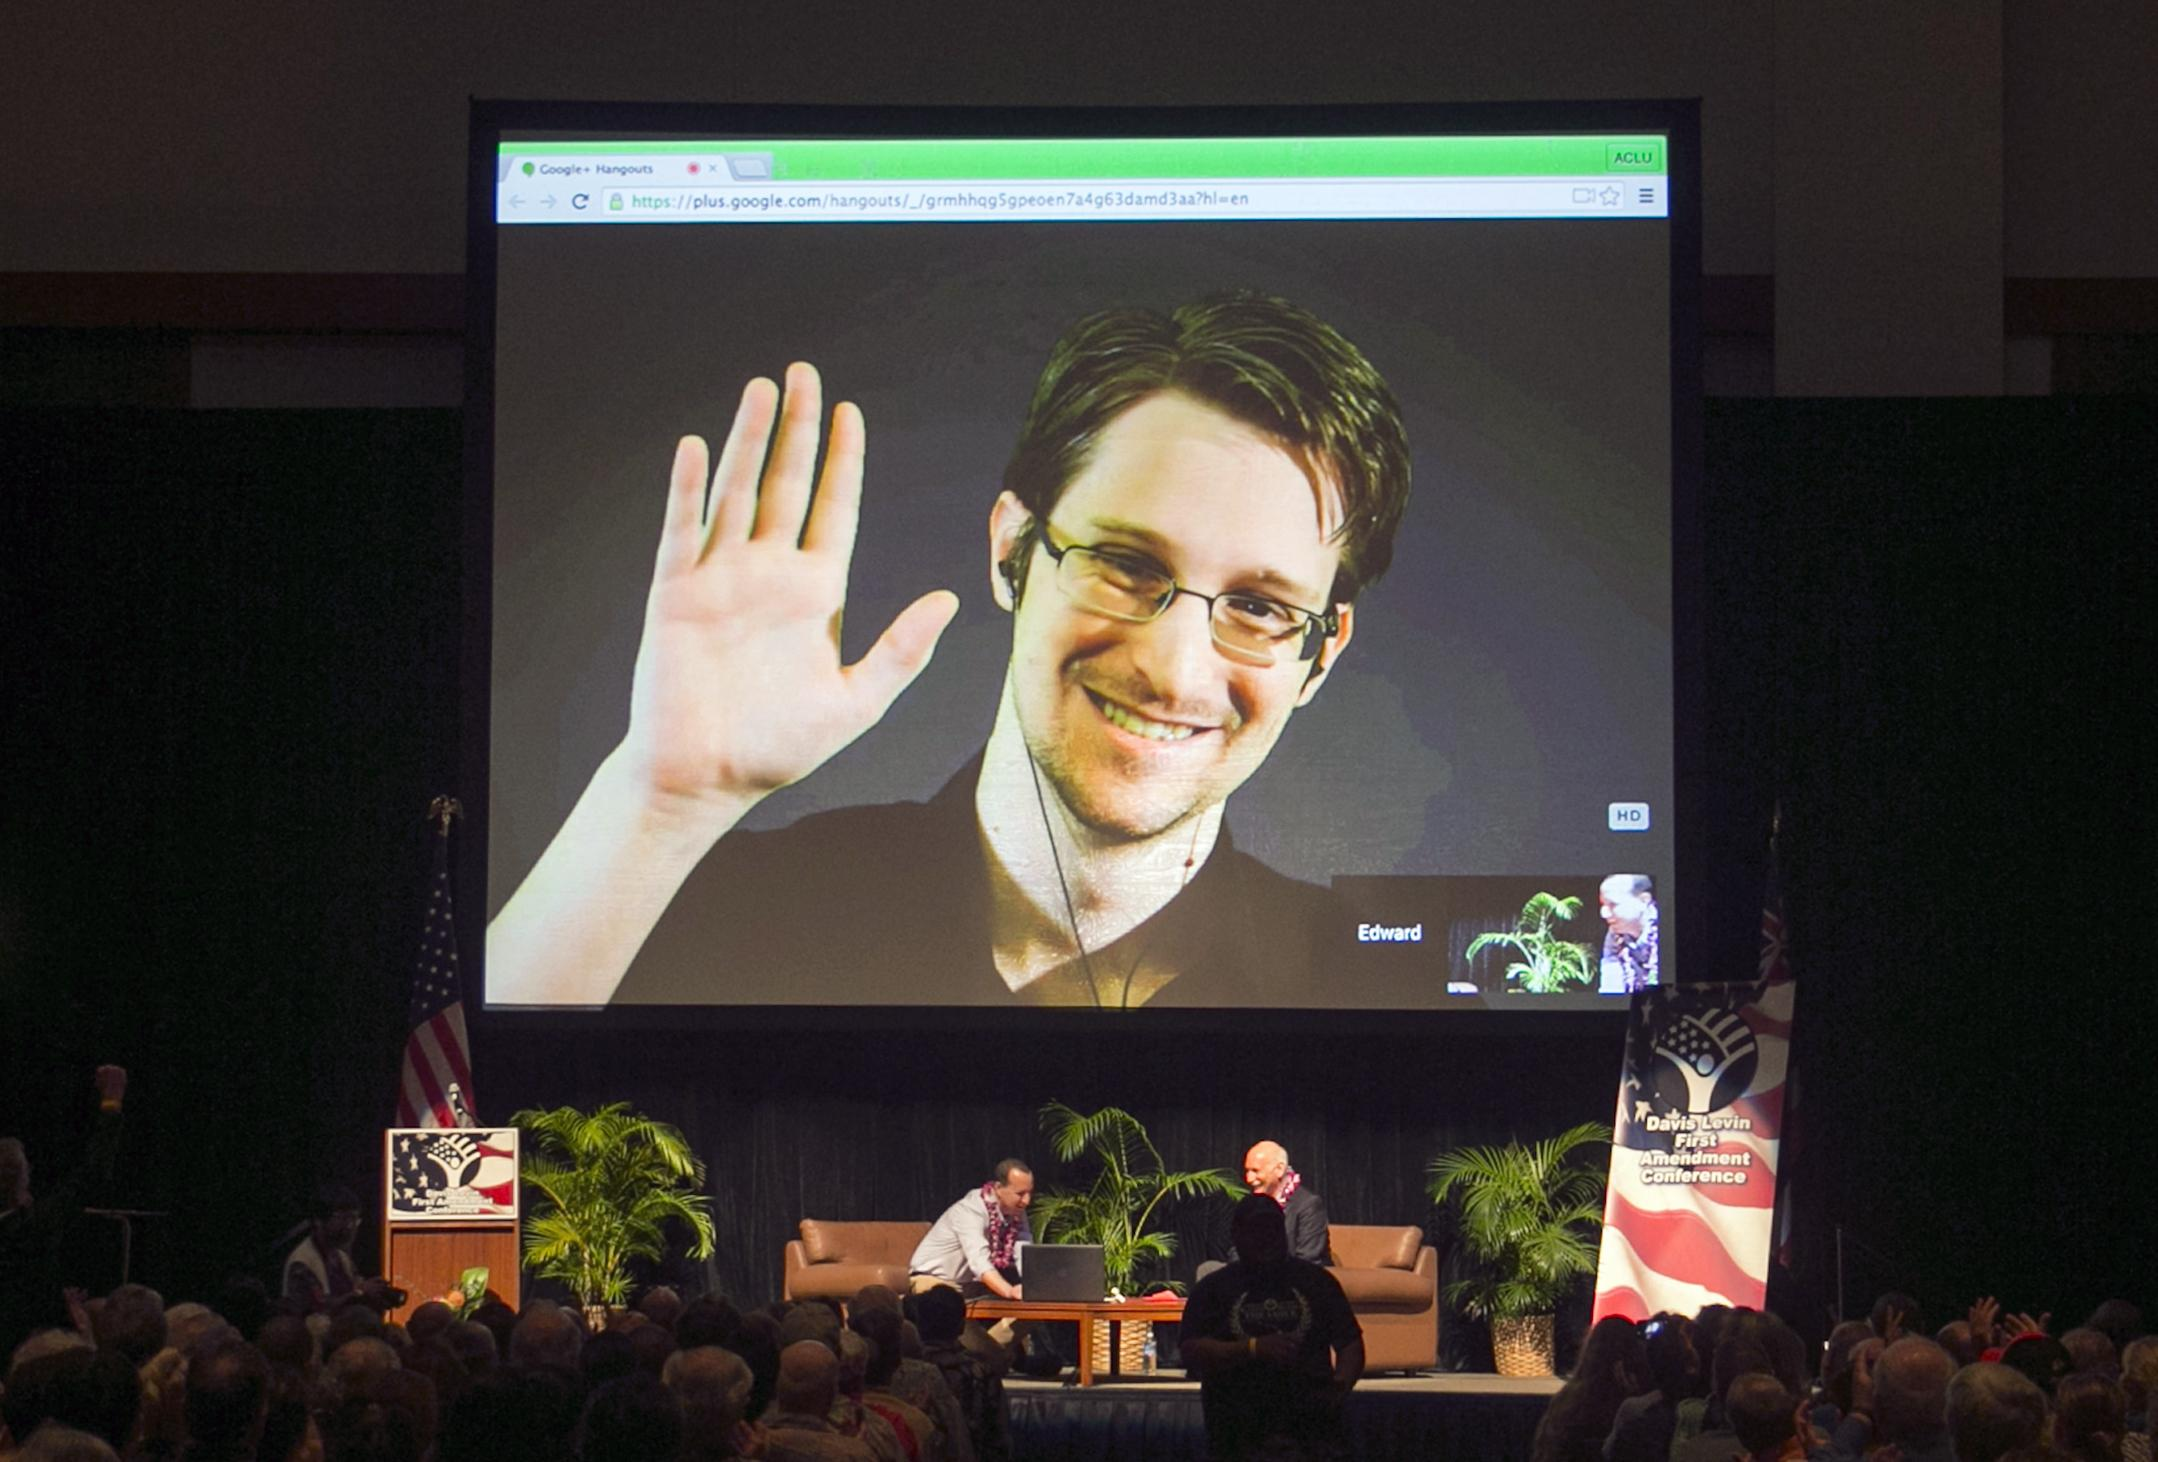 free state convention snowden - Norwegian Court Rejects Edward Snowden's Request For Safe Passage